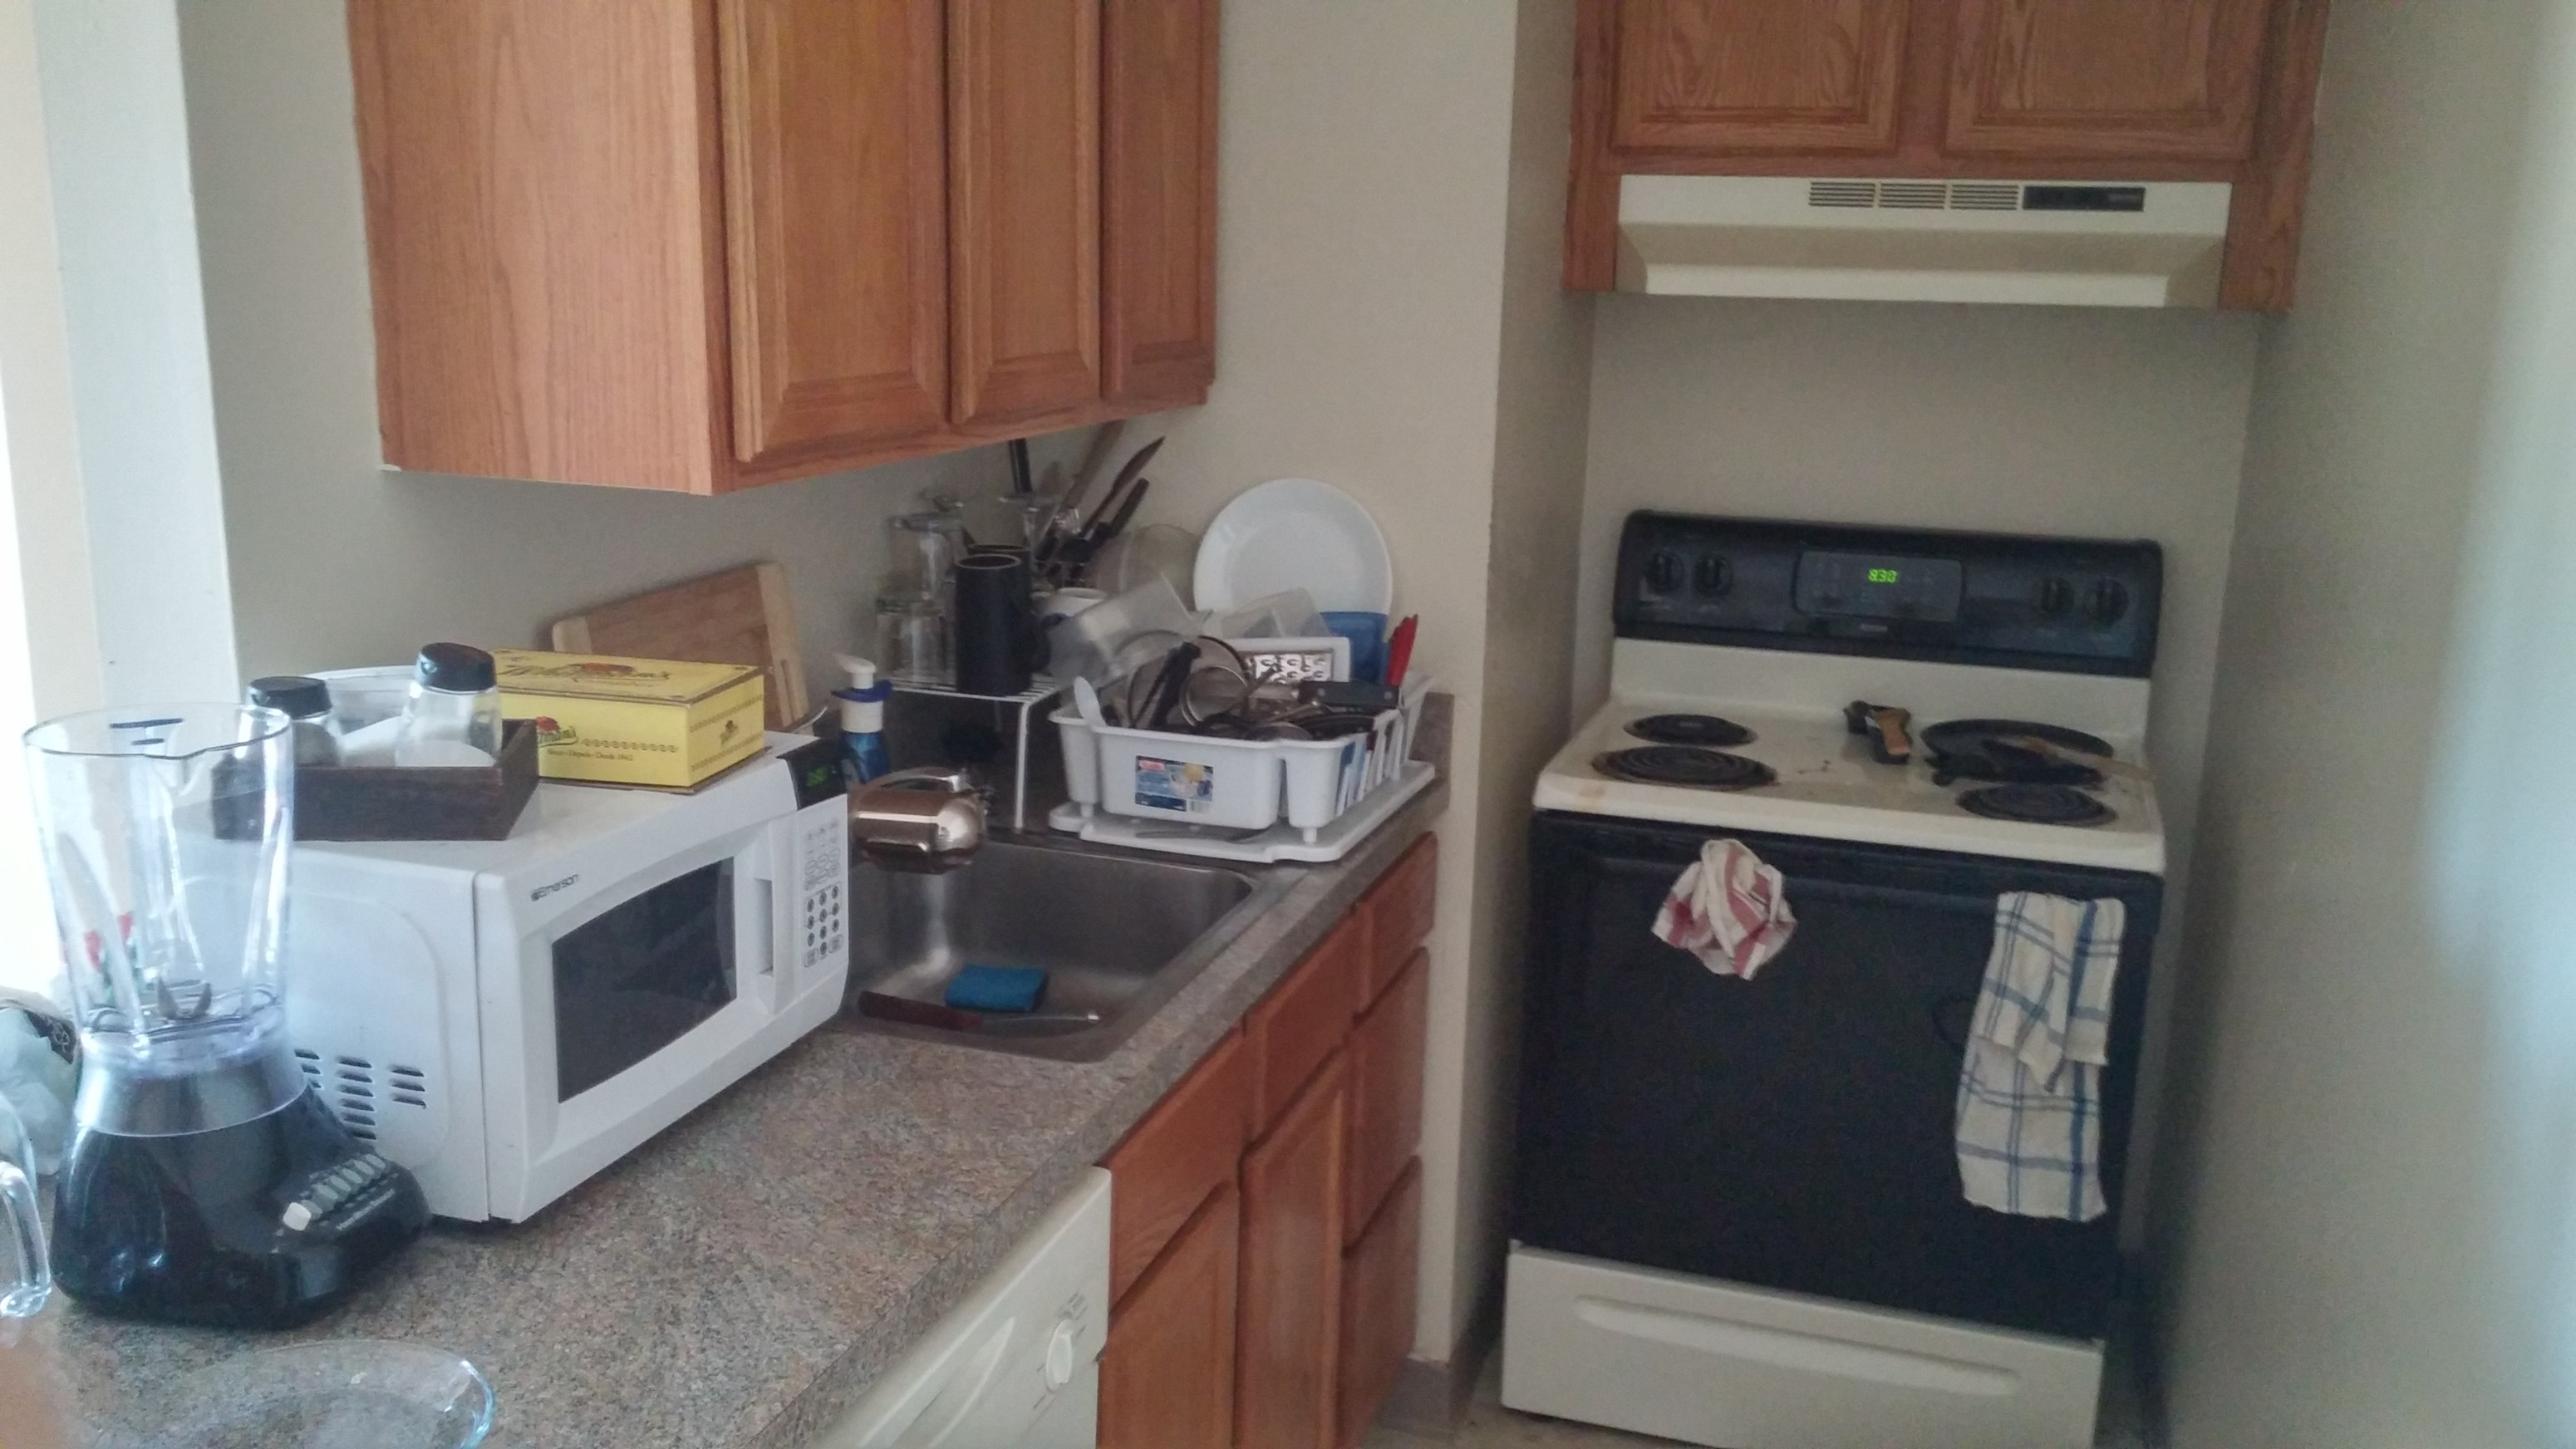 Very Clean Single Room Available From in Lowell MA : 832270 - Sulekha Roommates